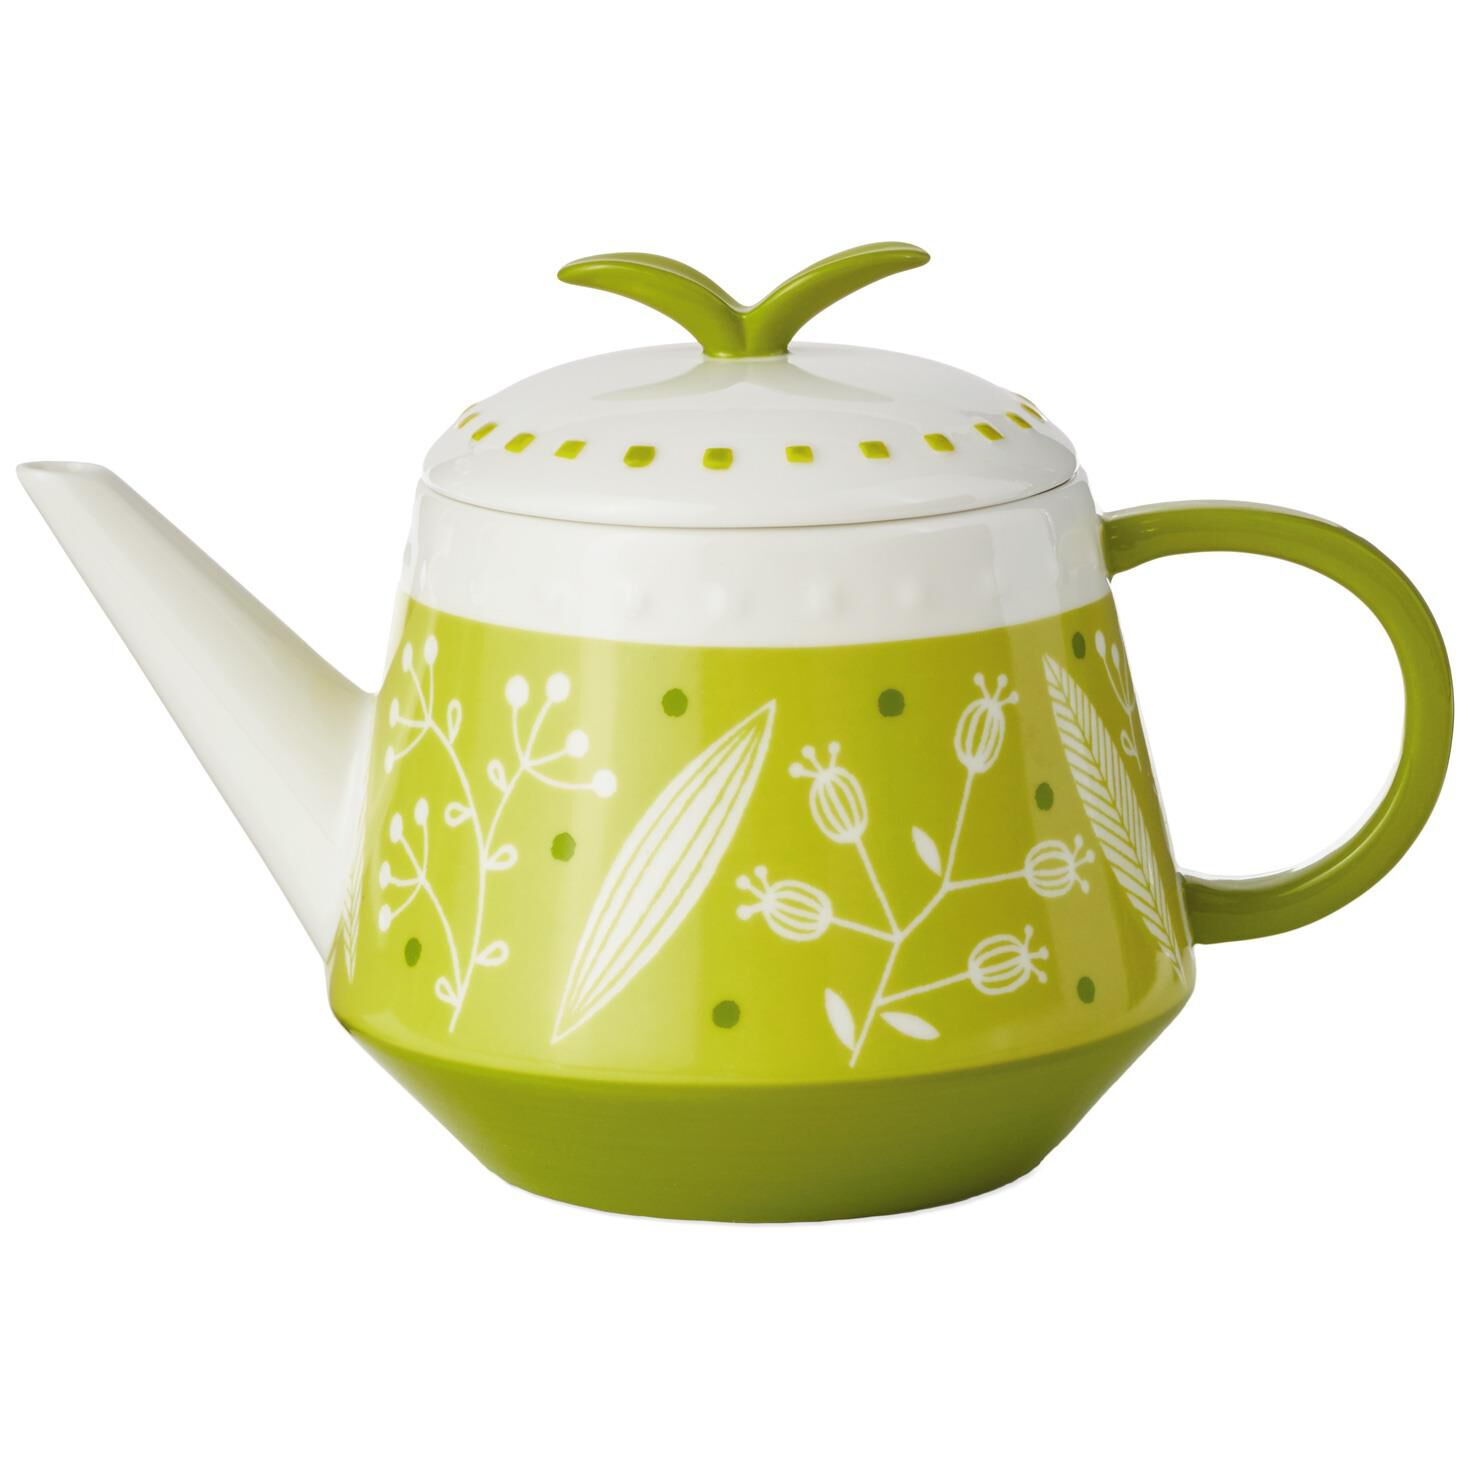 Ceramic Teapot With Infuser Ceramic Teapots With Infuser Atcsagacity